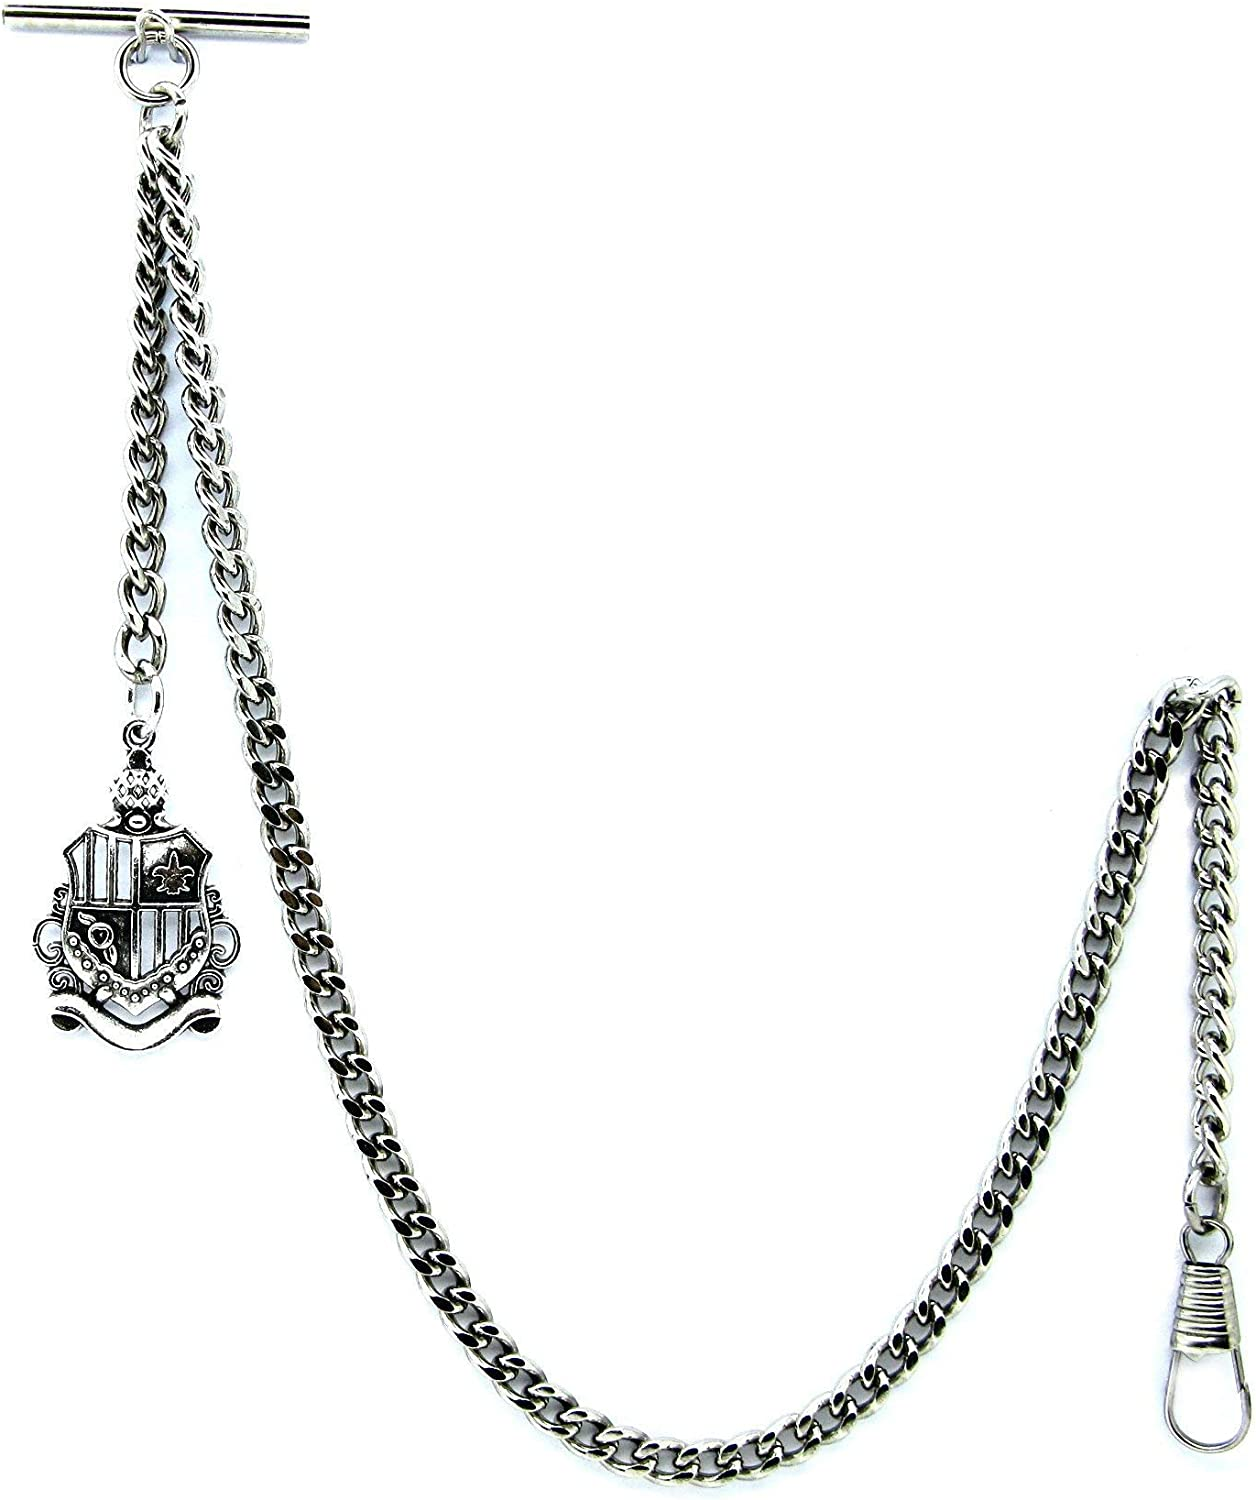 New Shipping Free Albert Chain Silver Color Pocket Watch Chains Men for with Award-winning store Swive